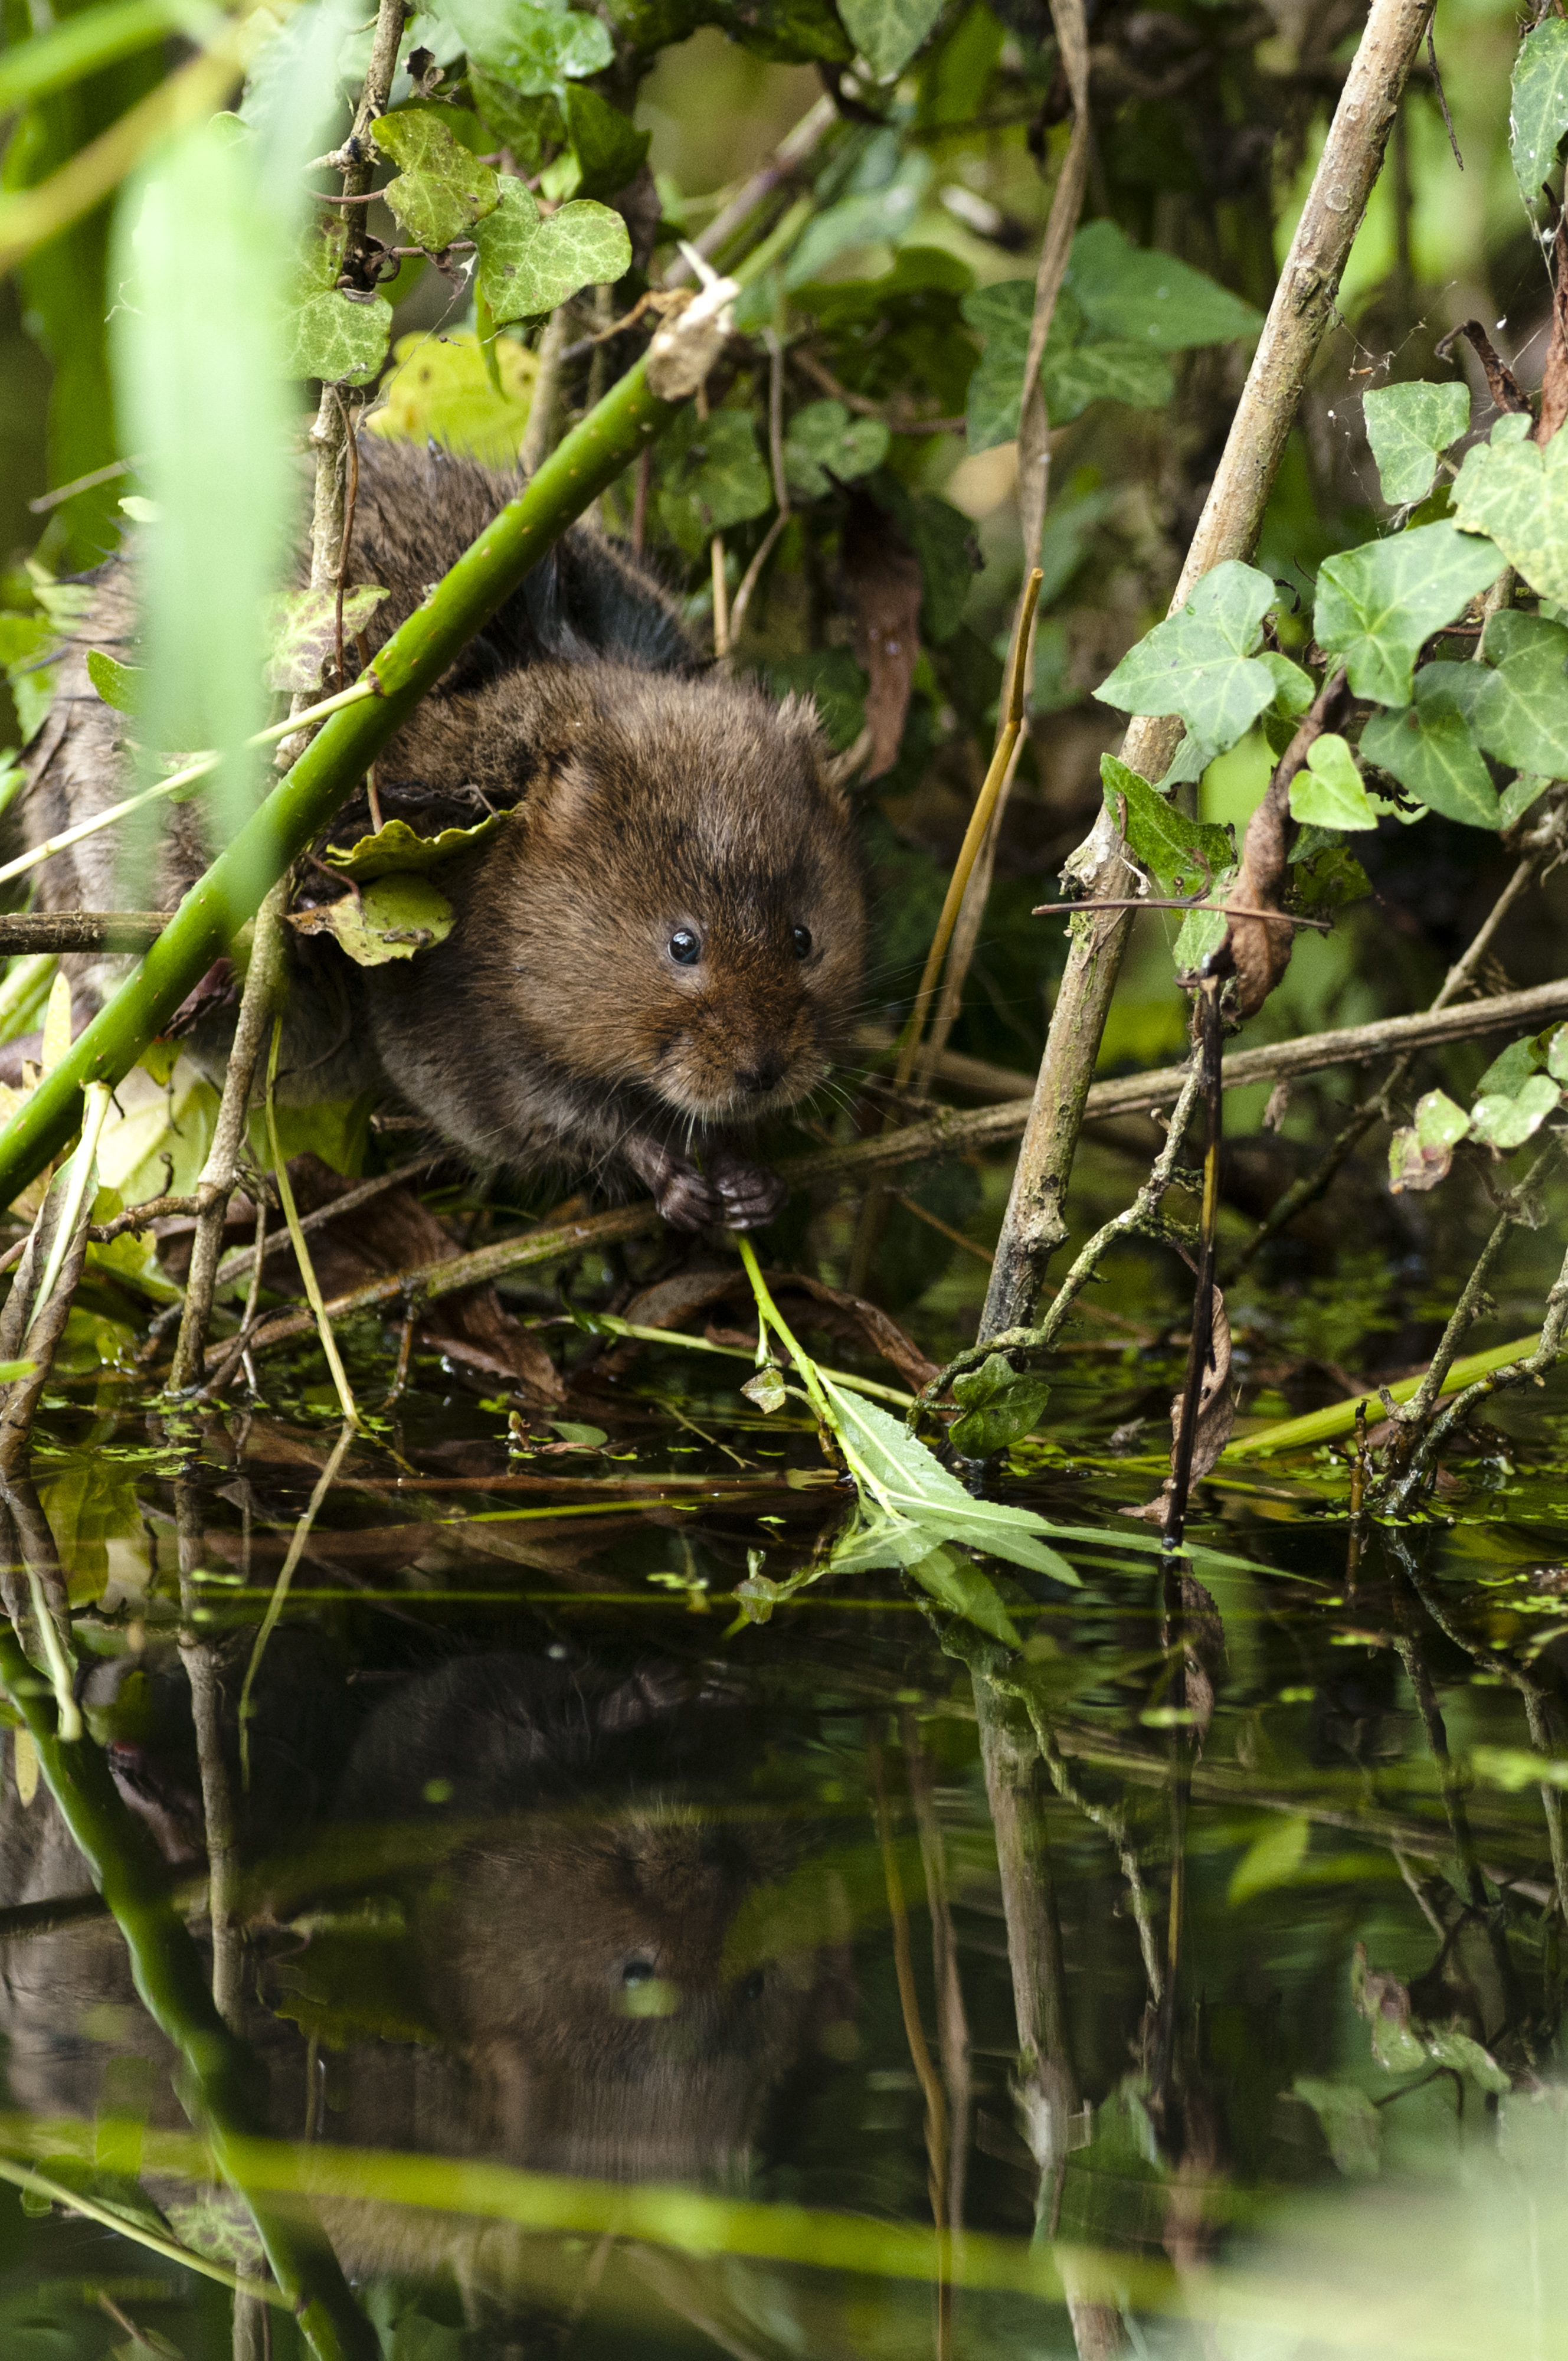 Portrait of a water vole in a nature reserve